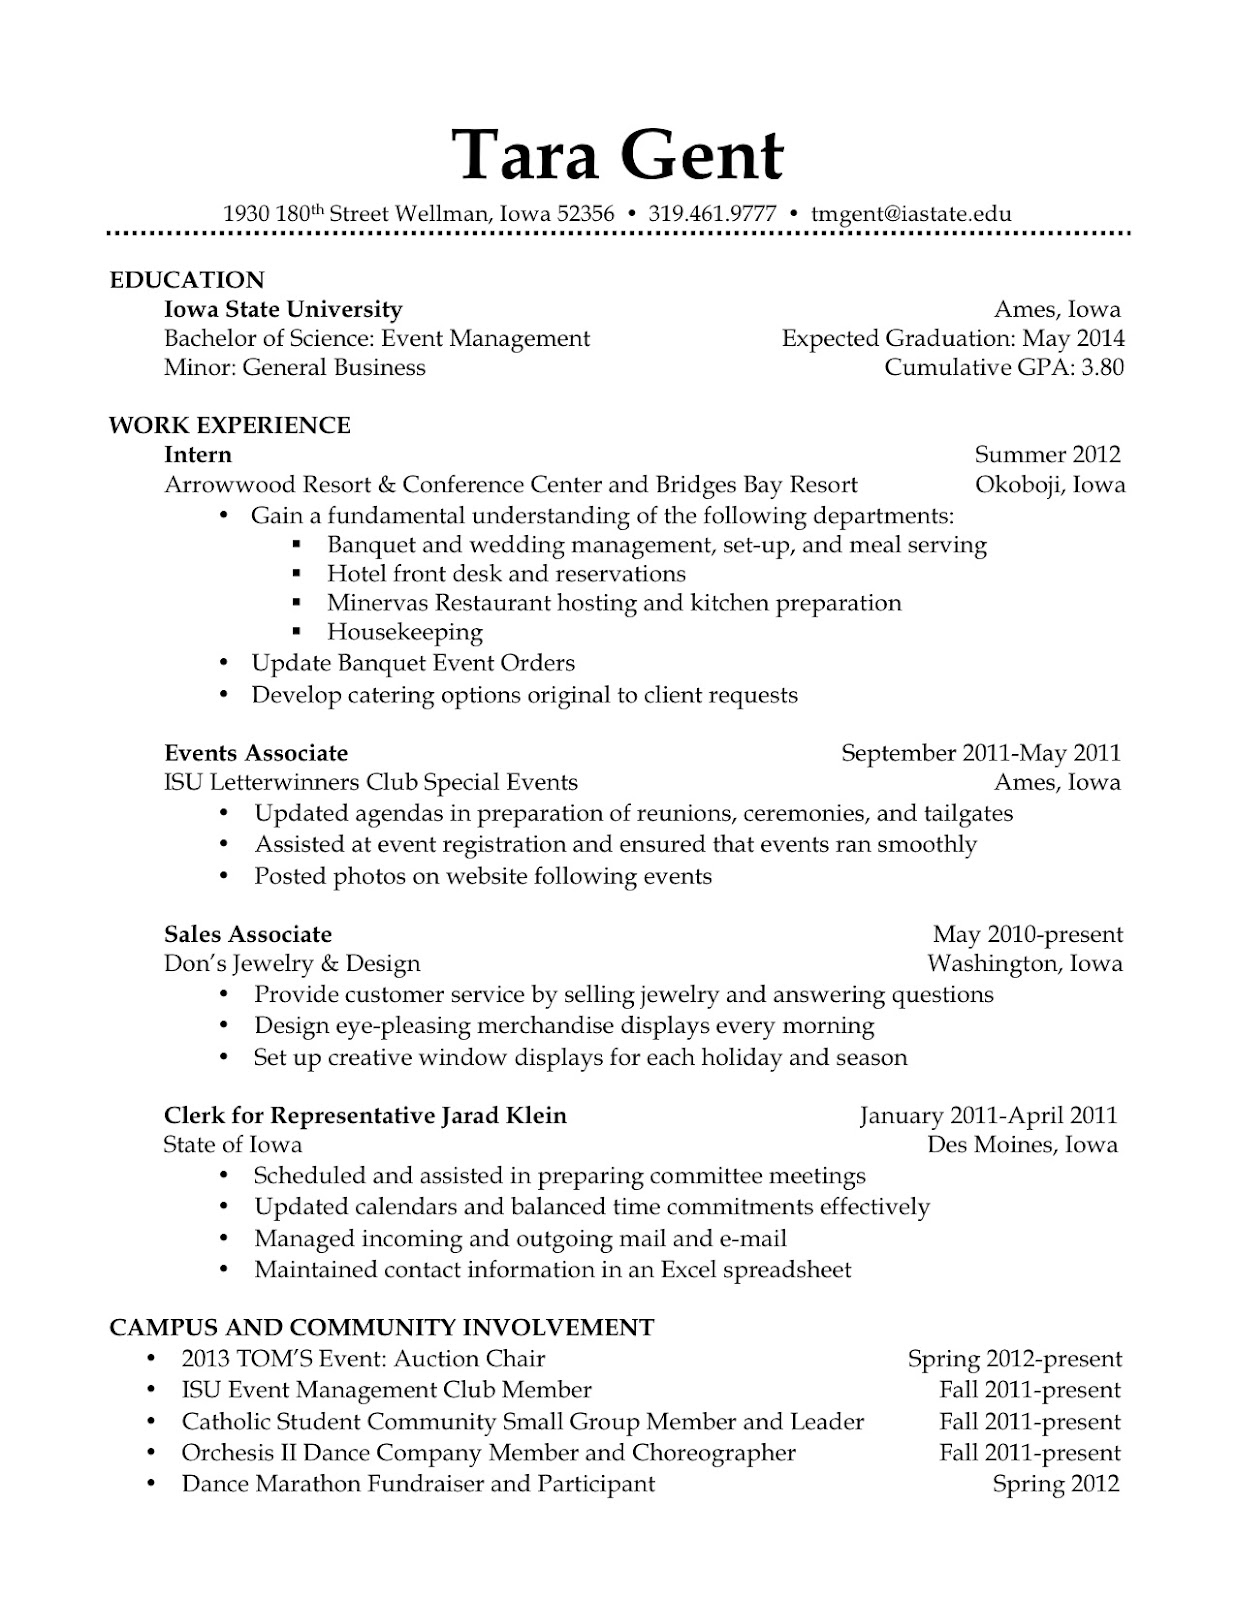 sample resumes for professionals contractor helper resume gallery  professional sample for contractor helper resume gallery professional